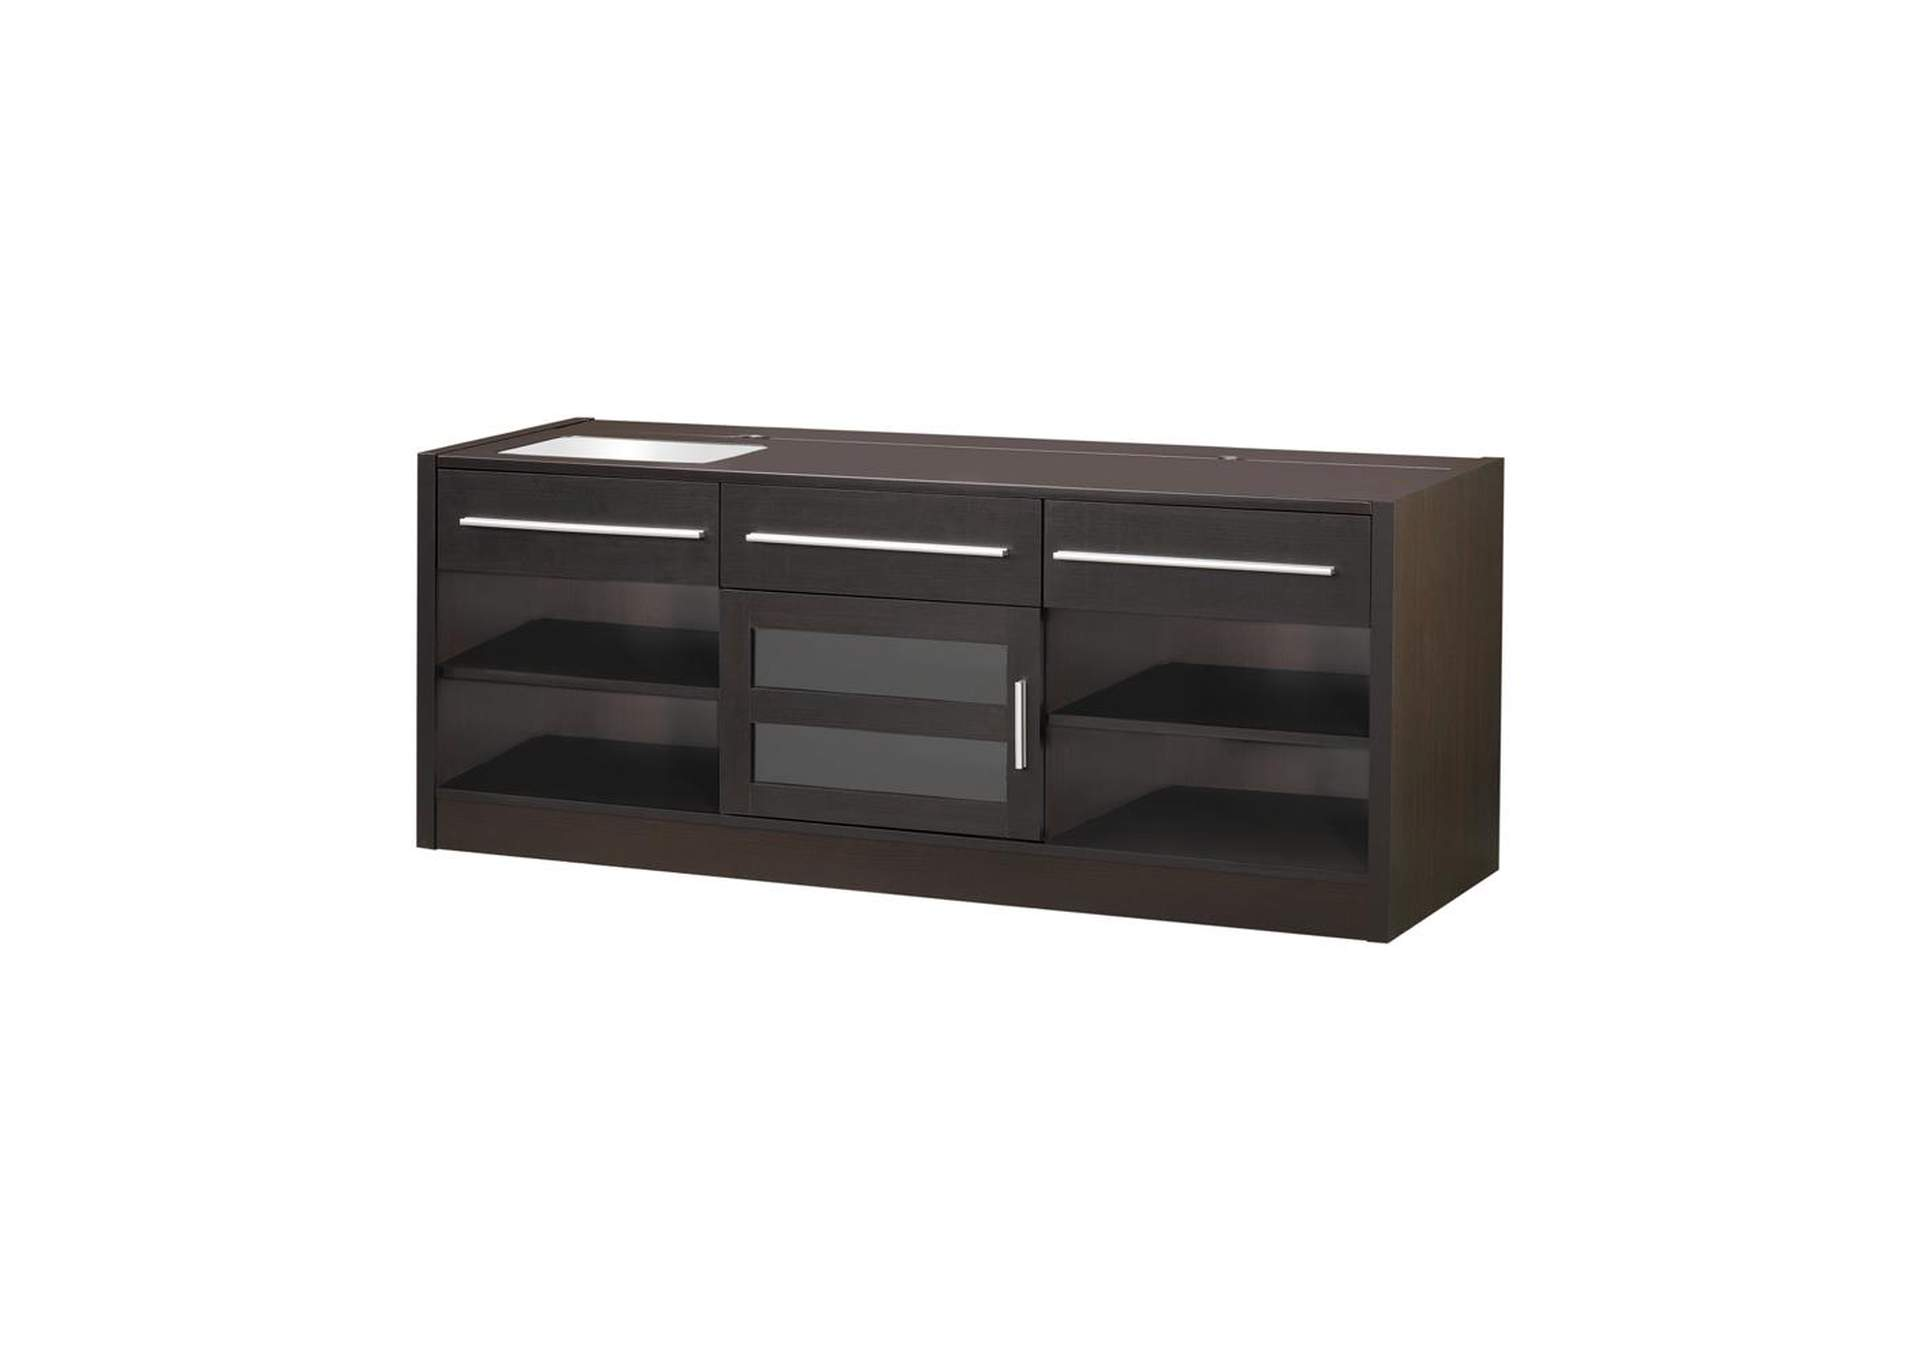 Cappuccino Contemporary Cappuccino TV Console W/ Connect-It Power Drawer,Coaster Furniture